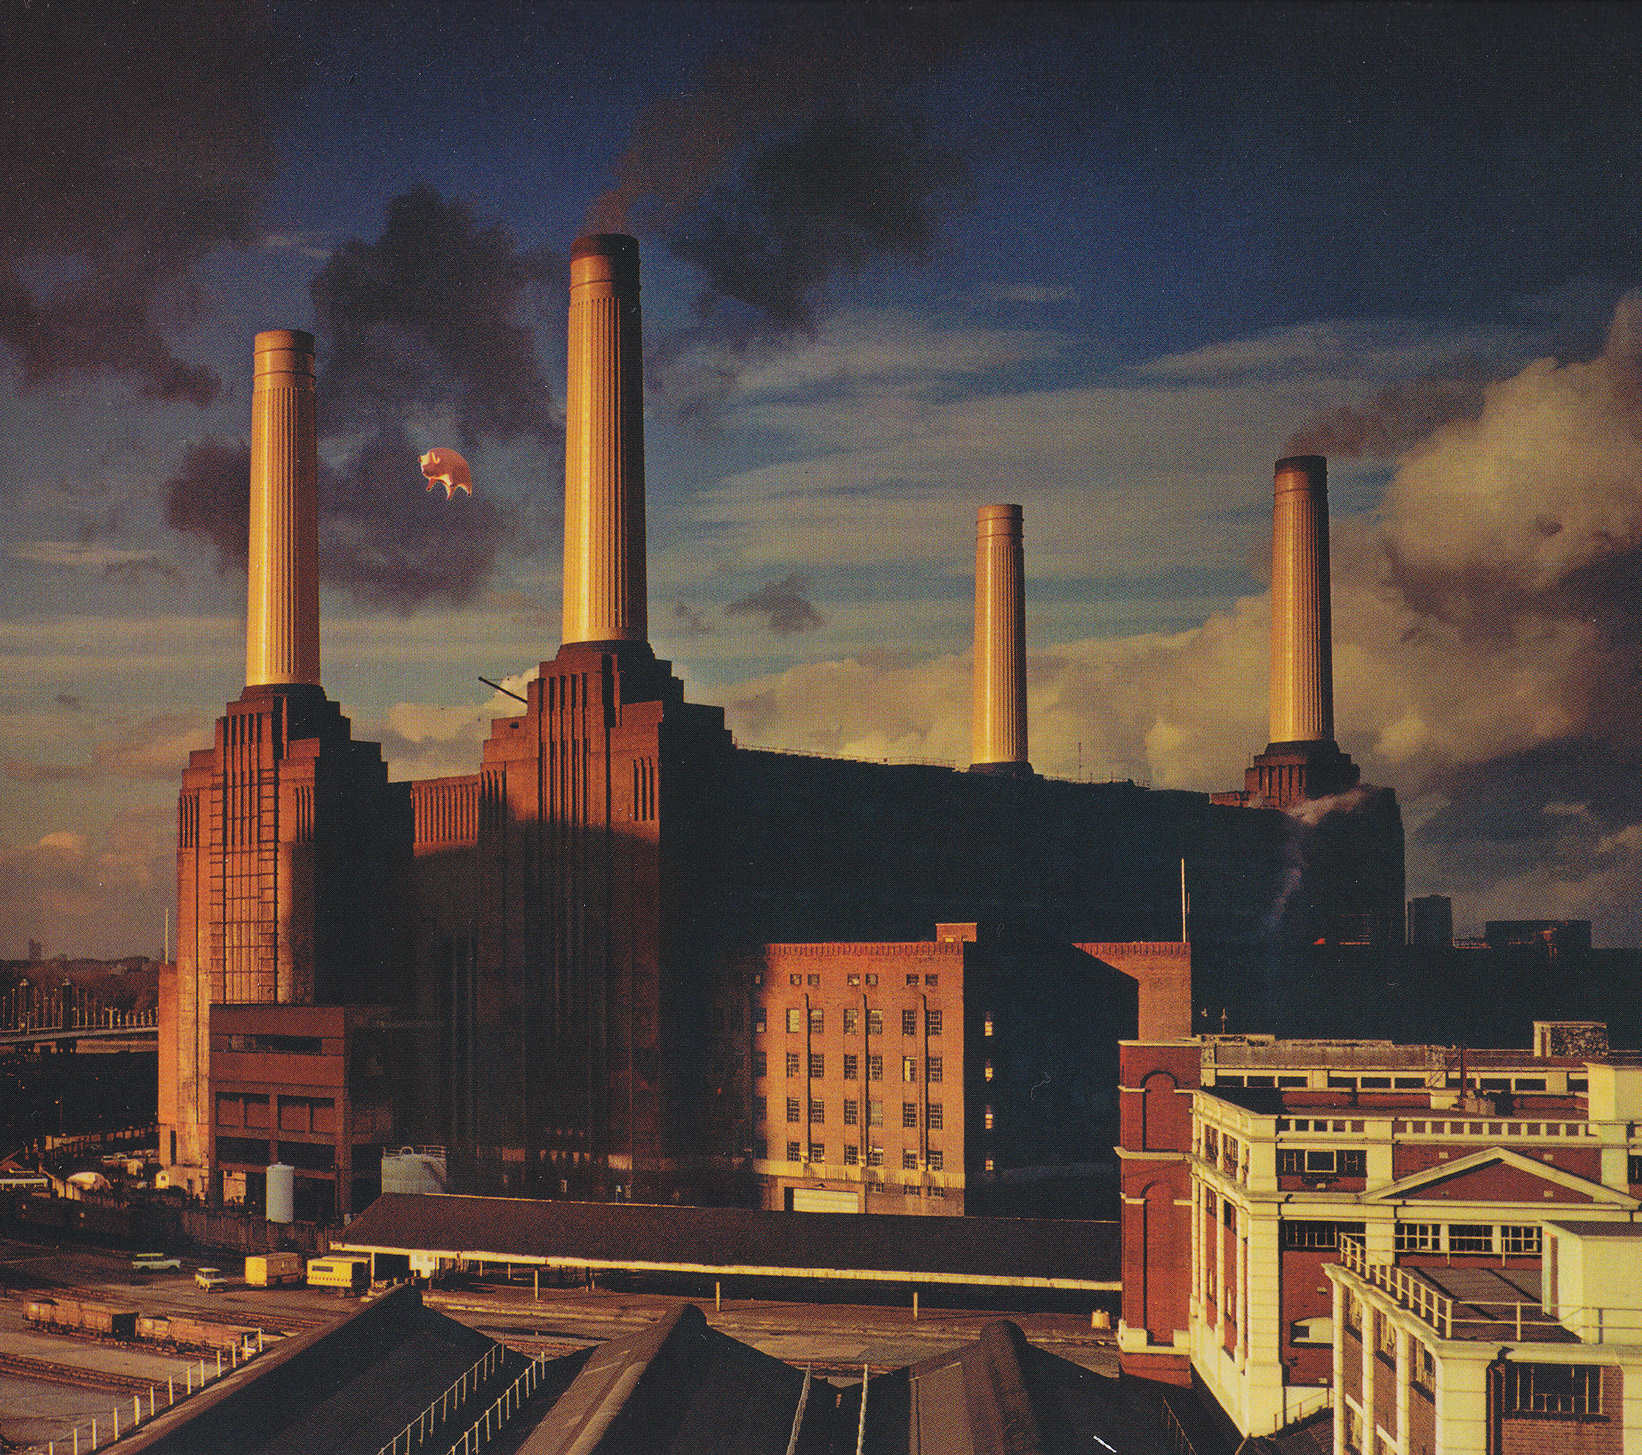 COVERSBOXSK pink floyd   animals   high quality DVD 1642x1455